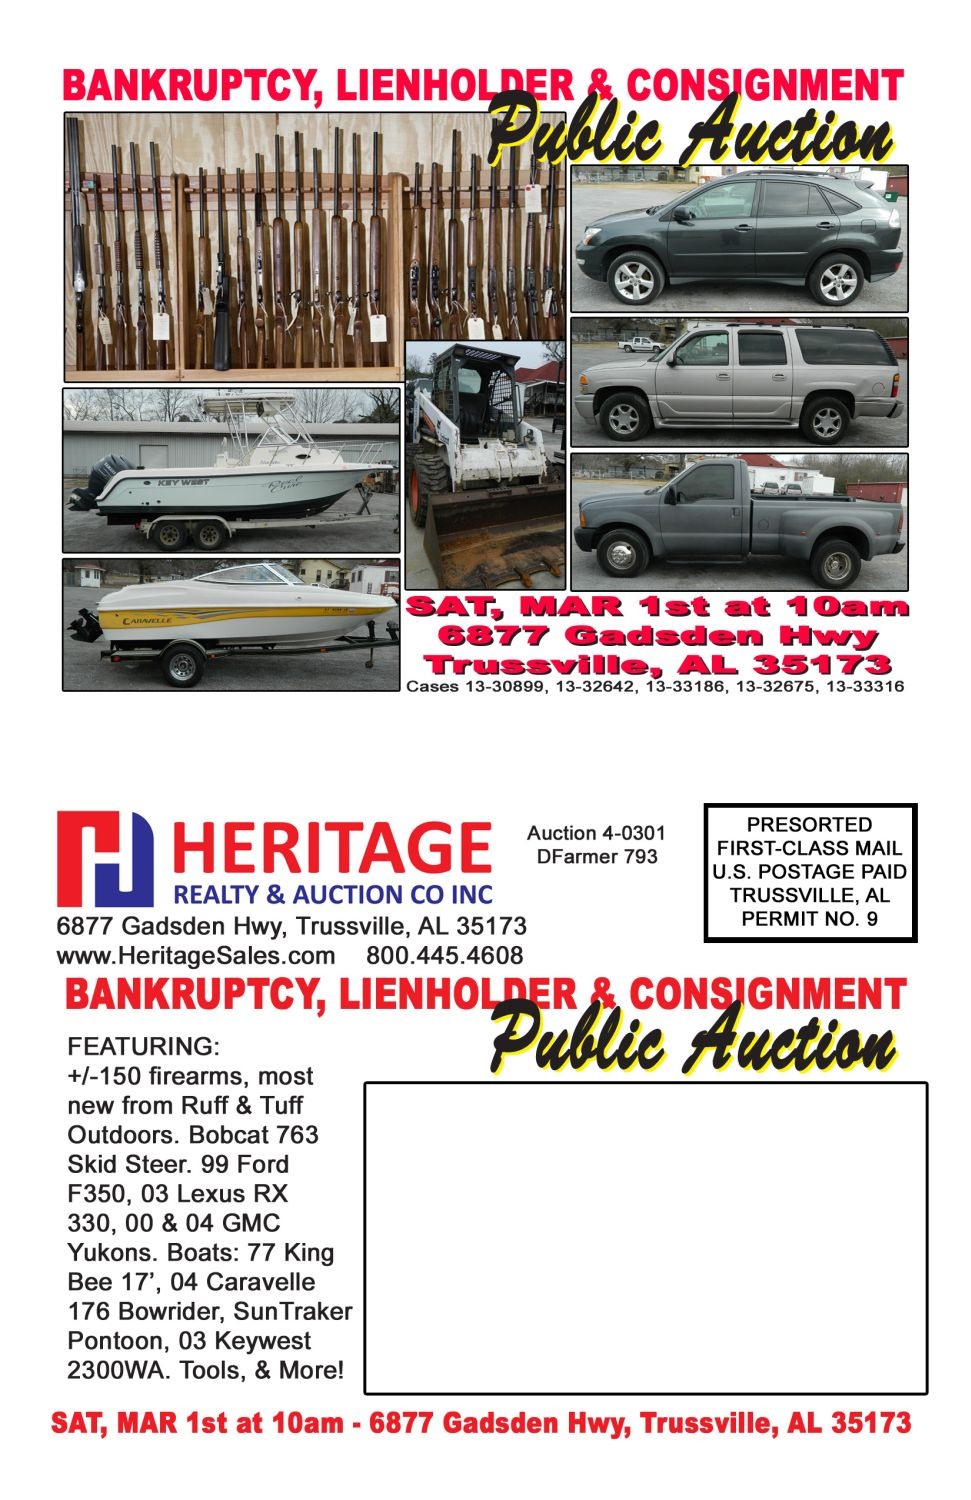 Bankruptcy, Lienholder & Consignment